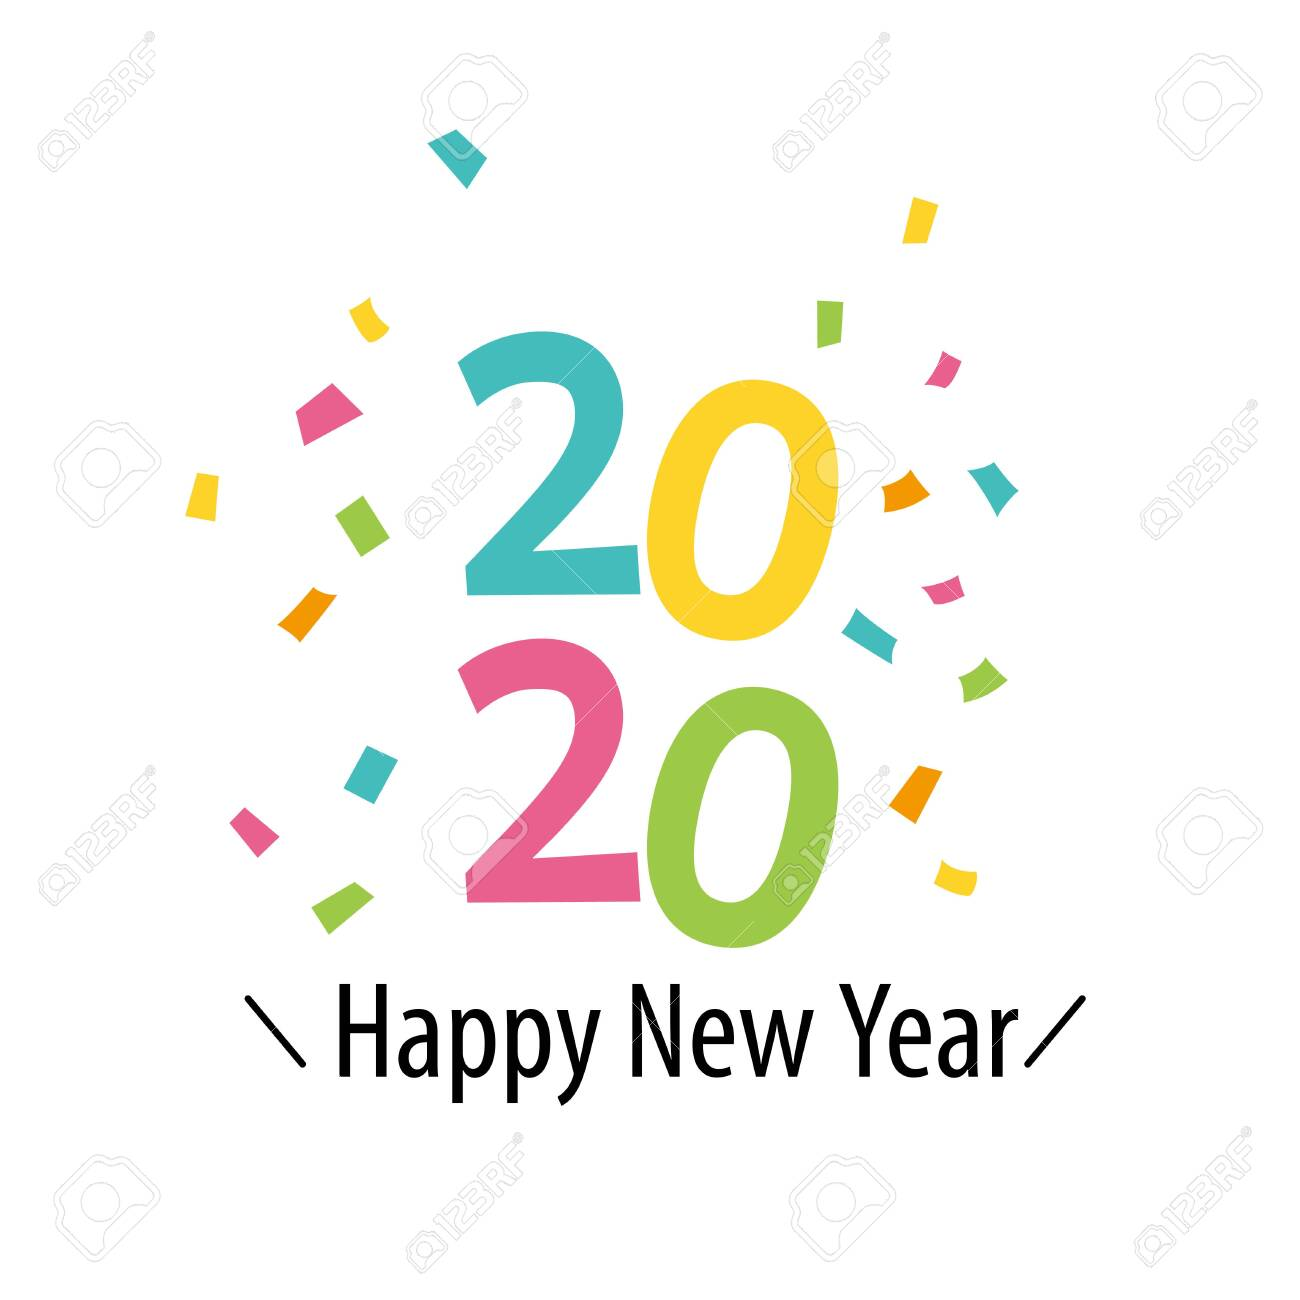 Happy New Year Clipart 2020.Happy New Year 2020 With Colorful Confetti